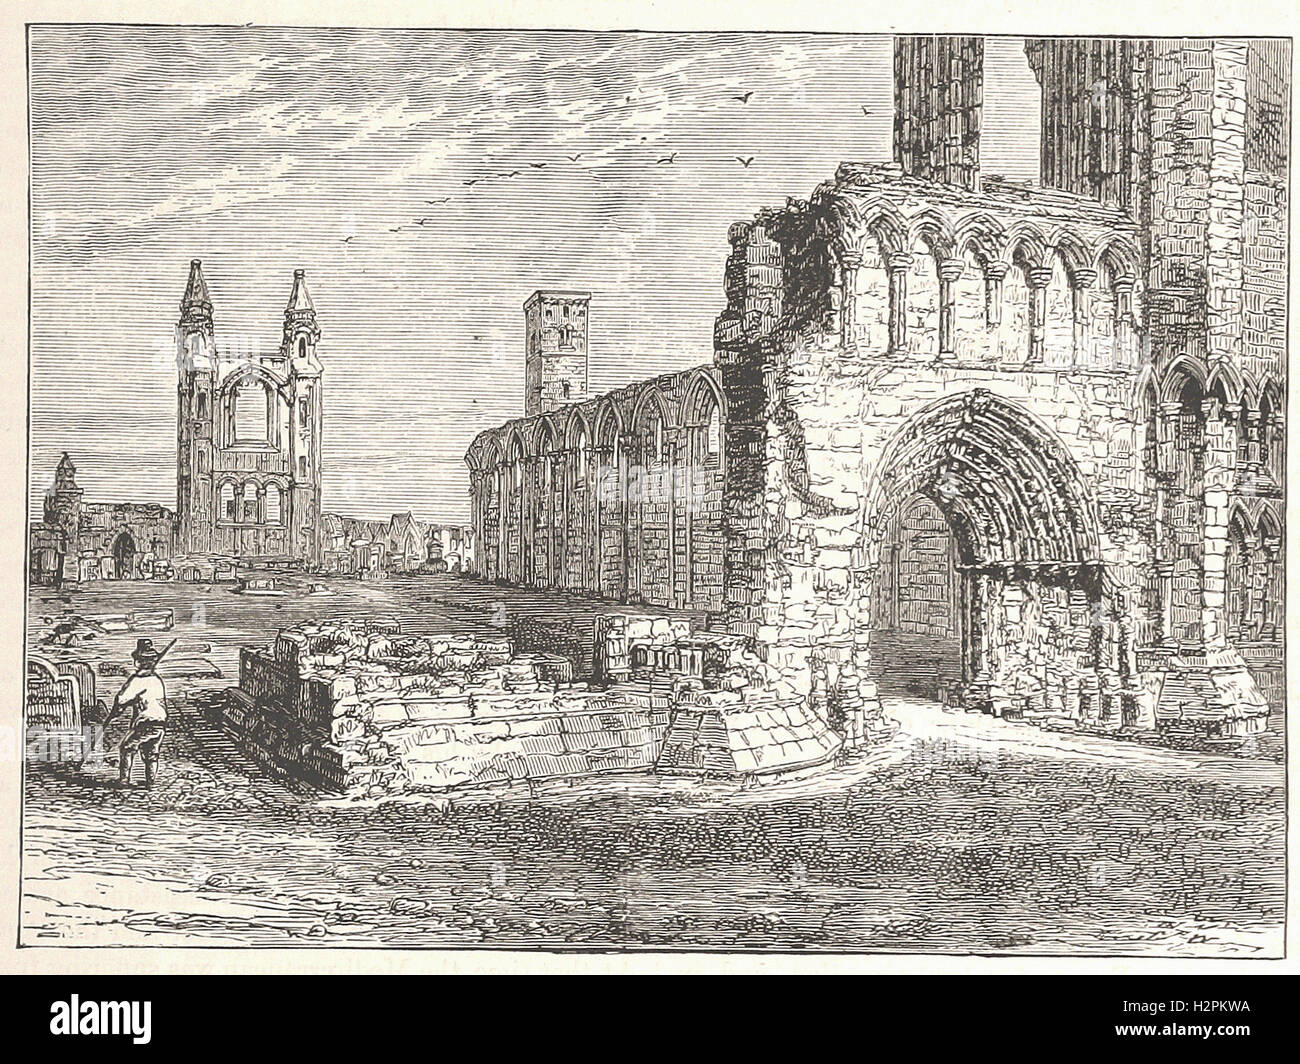 RUINS OF THE CATHEDRAL, ST. ANDREWS. - from 'Cassell's Illustrated Universal History' - 1882 - Stock Image